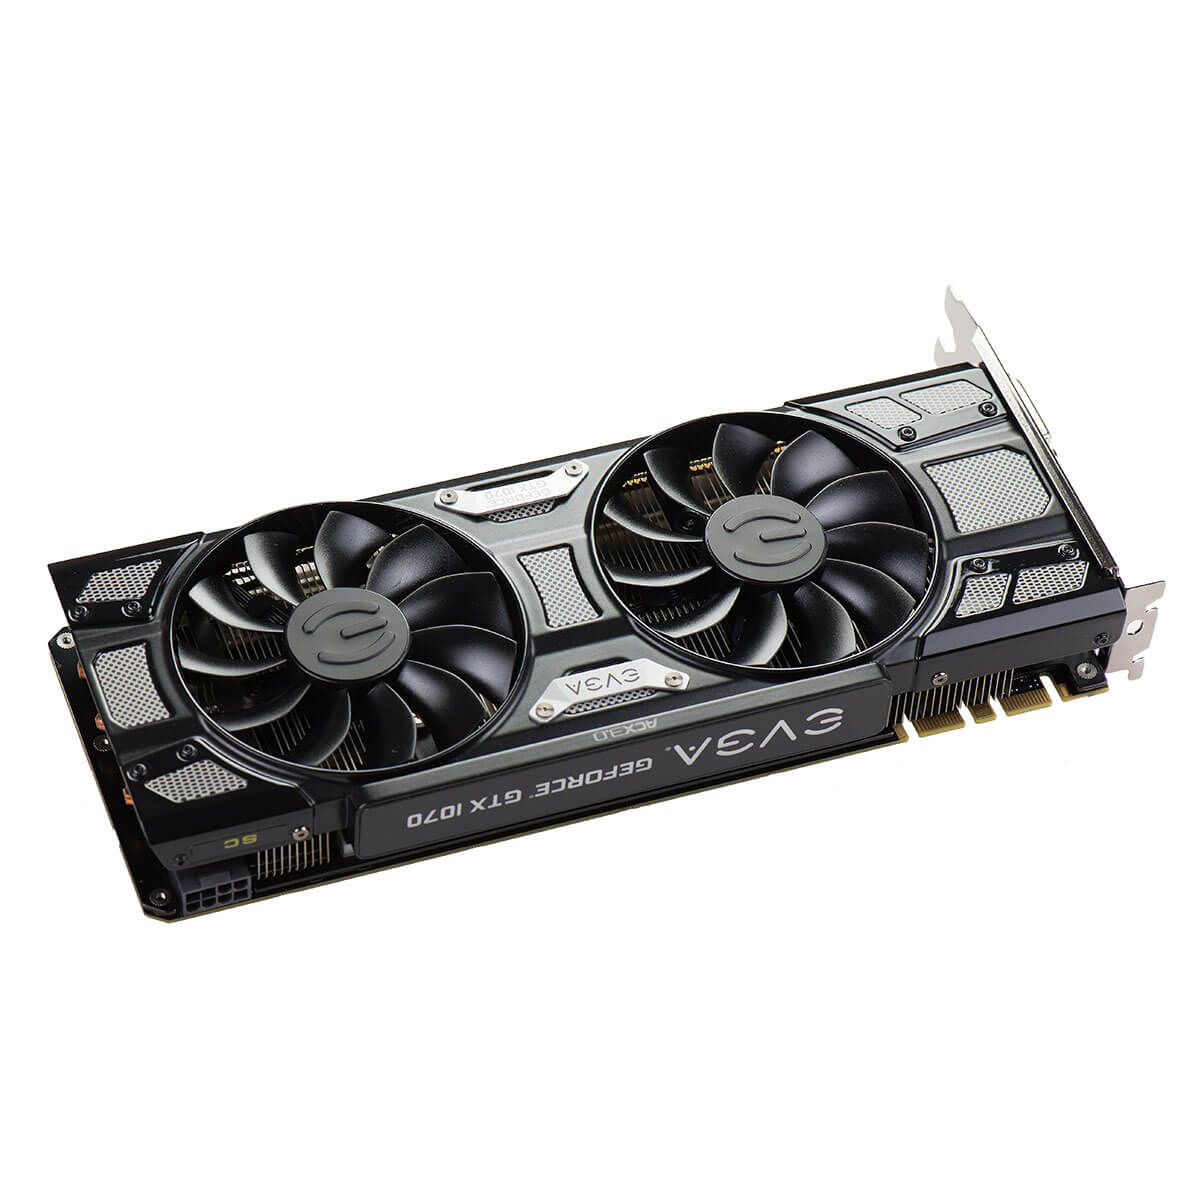 Placa de Vídeo VGA EVGA NVIDIA GeForce GTX 1070 SC 8GB GDDR5 Black Edition - 08G-P4-5173-KR